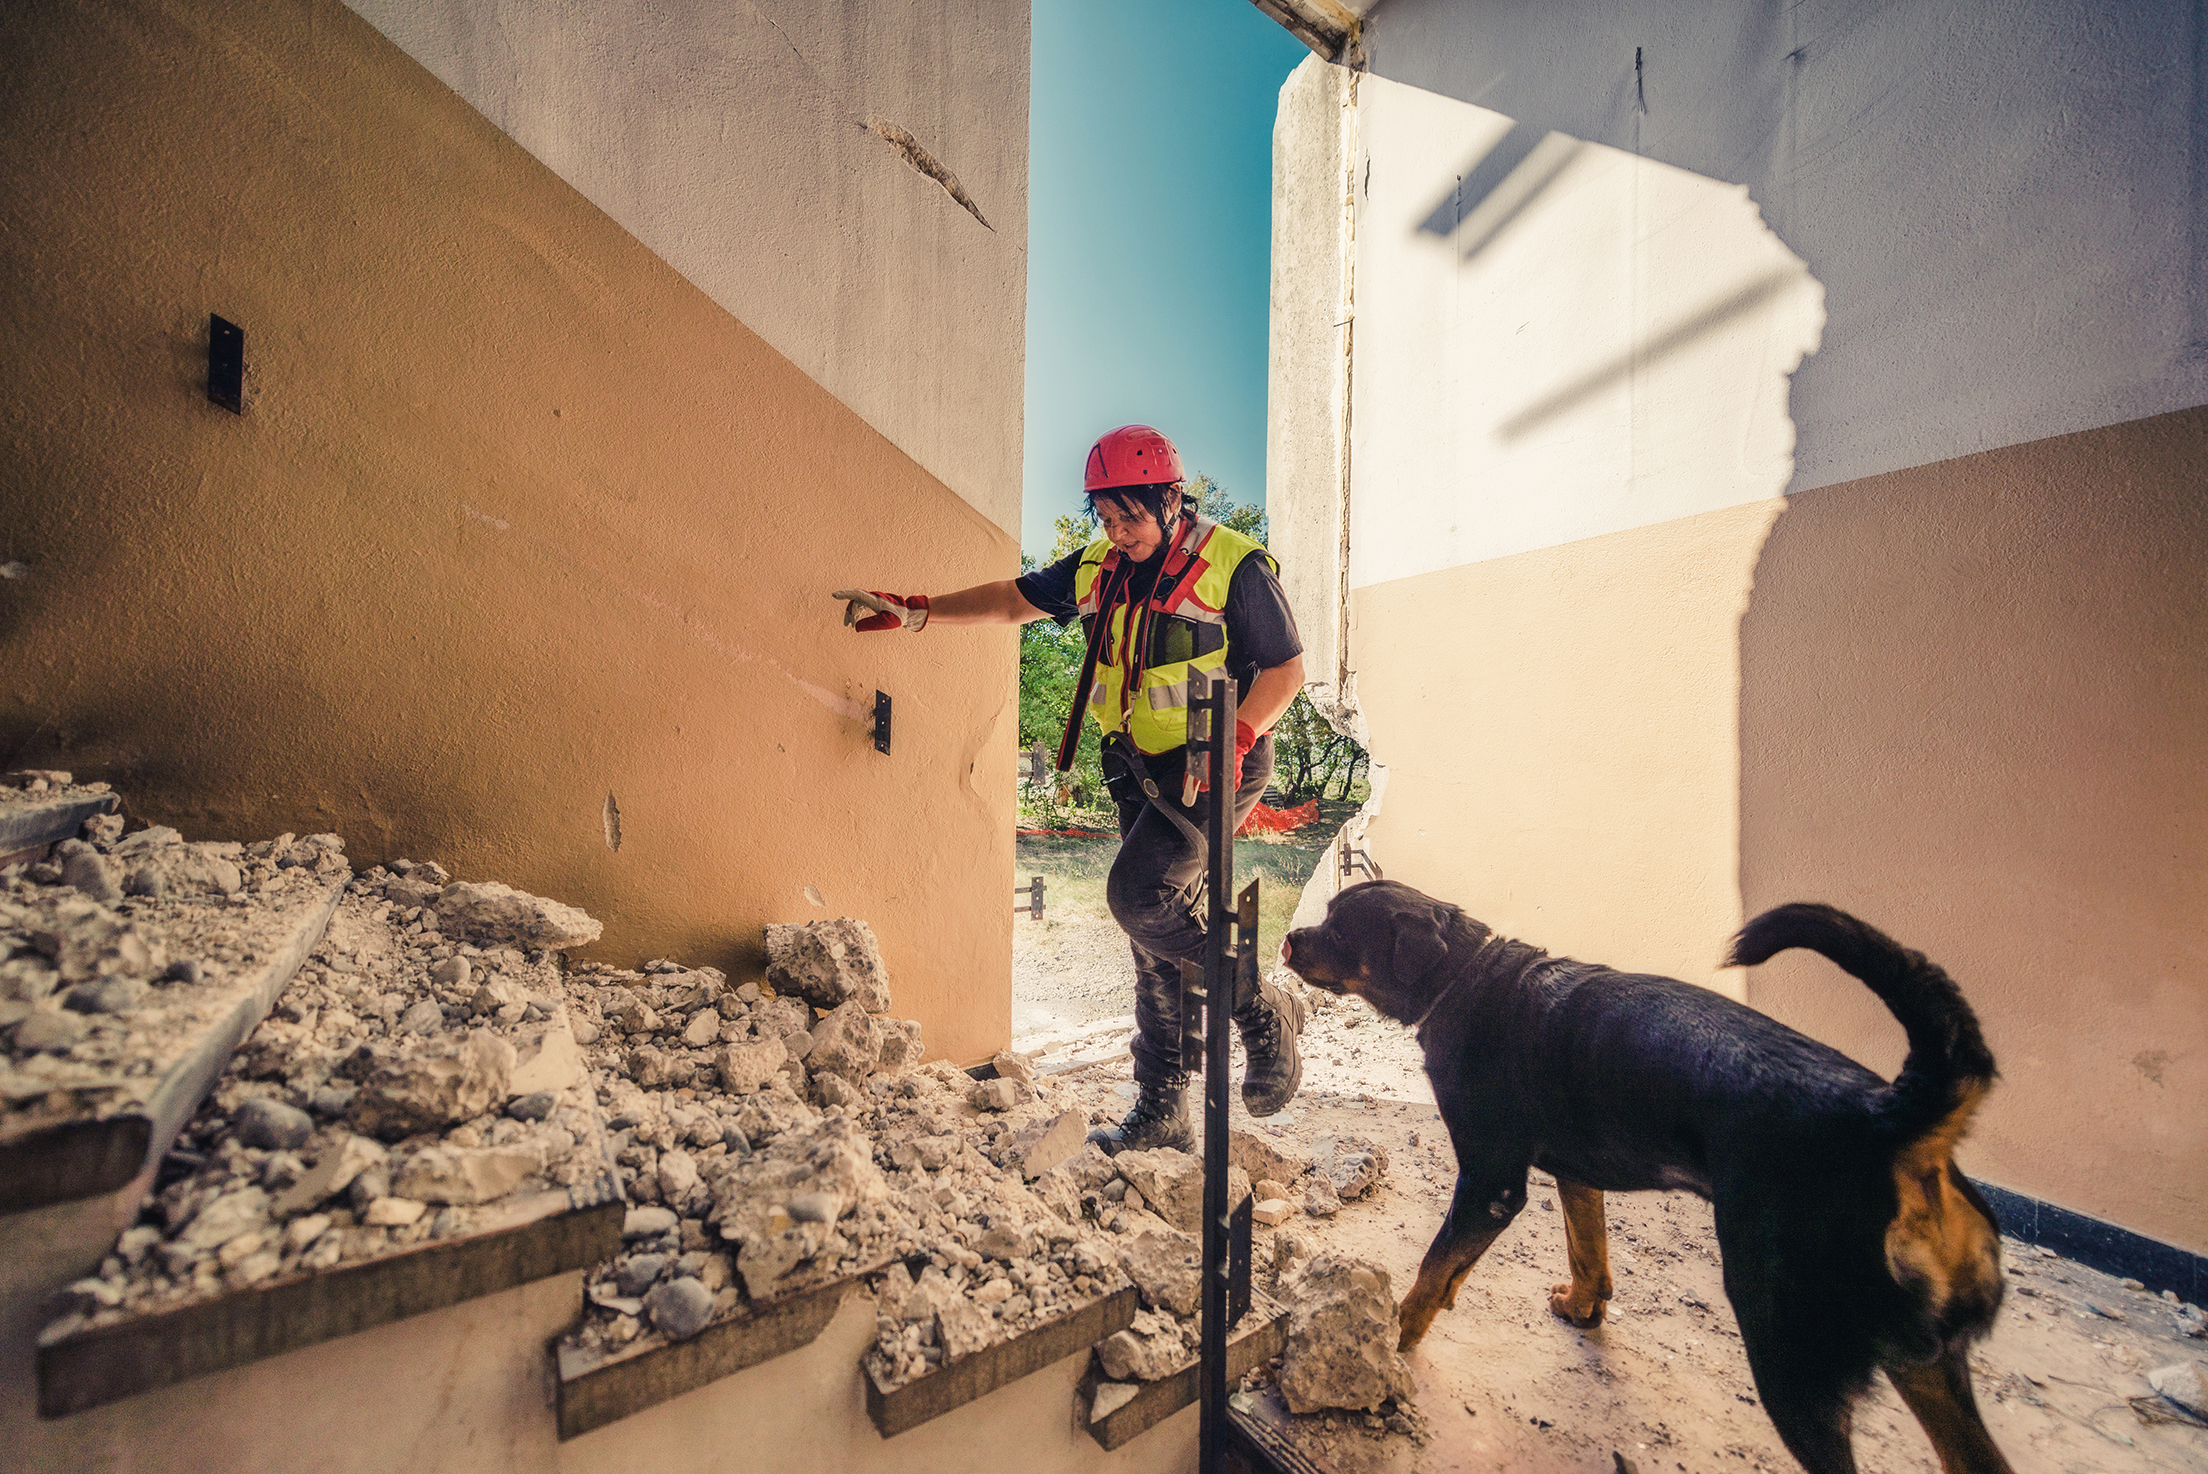 Rescuer search trough ruins of building with help of rescue dog.